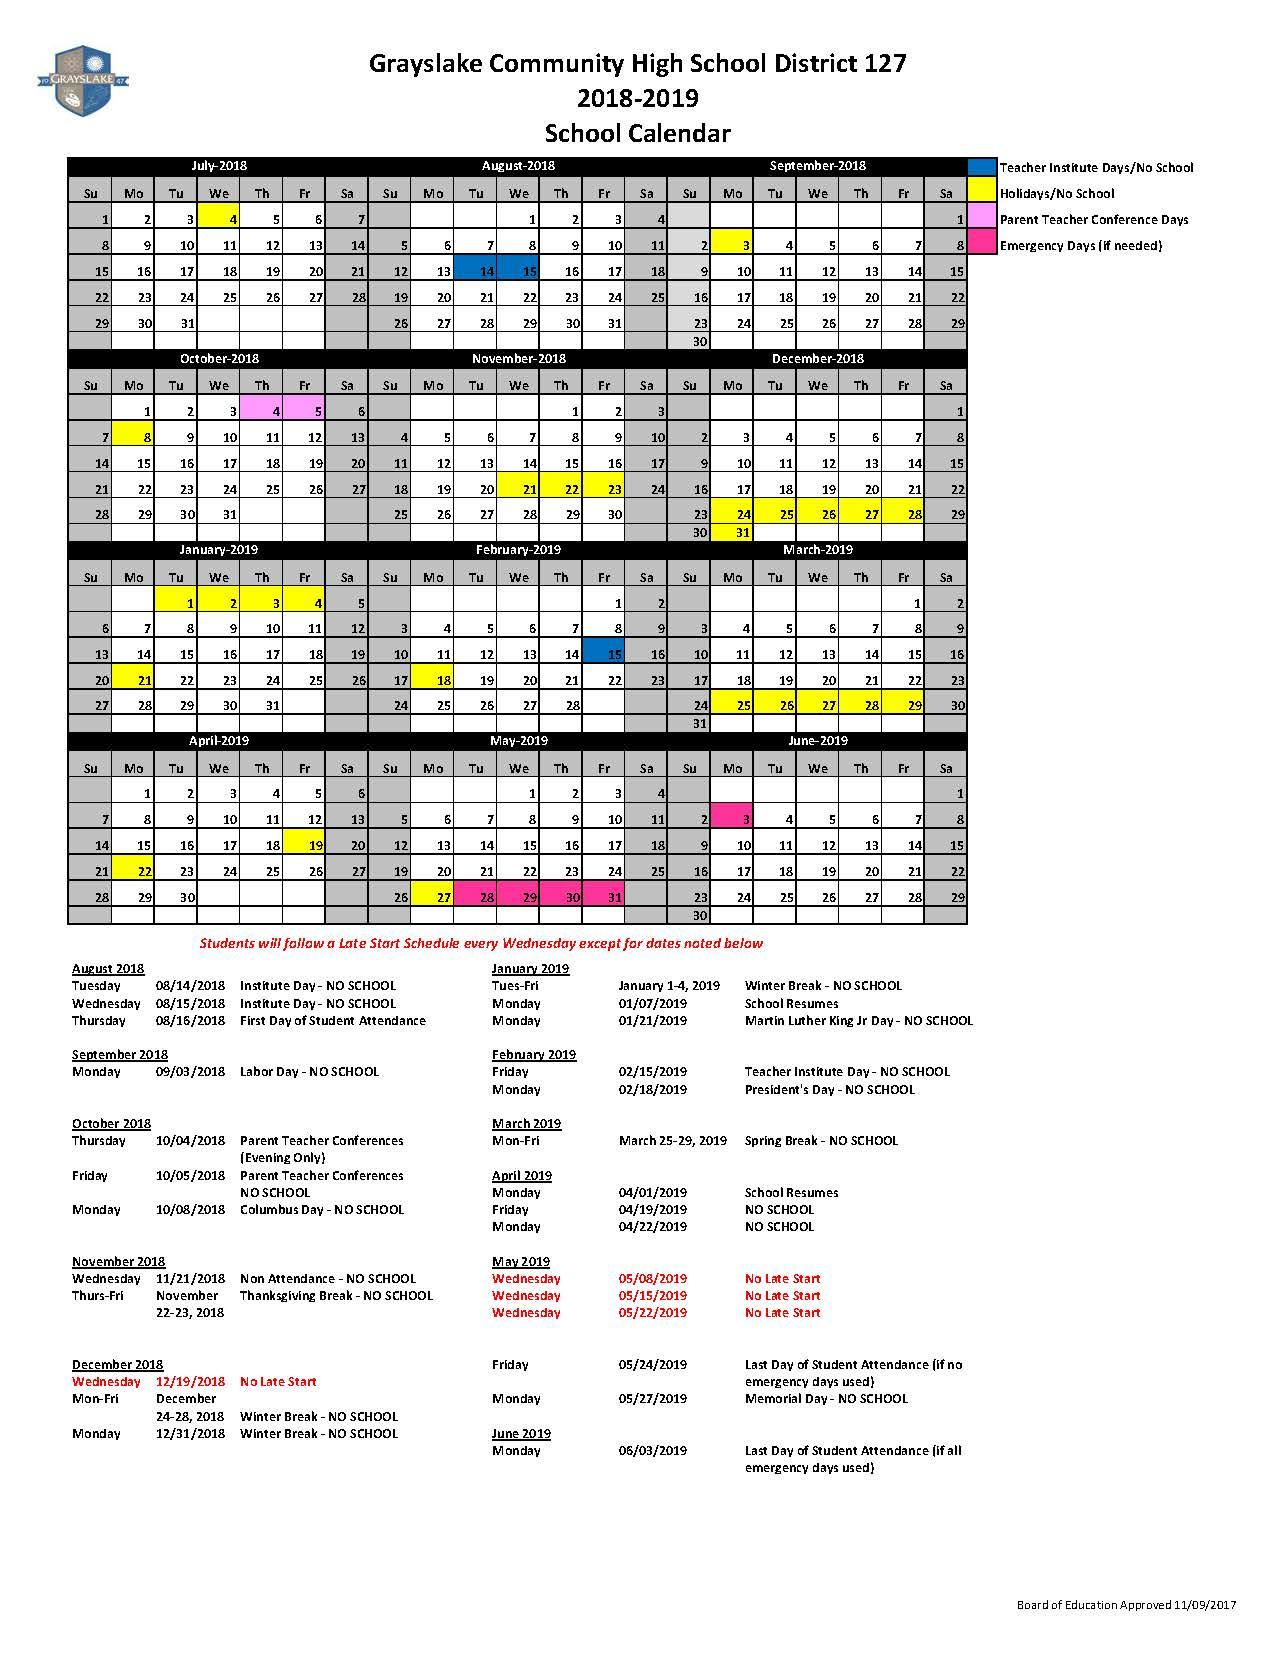 District Planning Calendar About